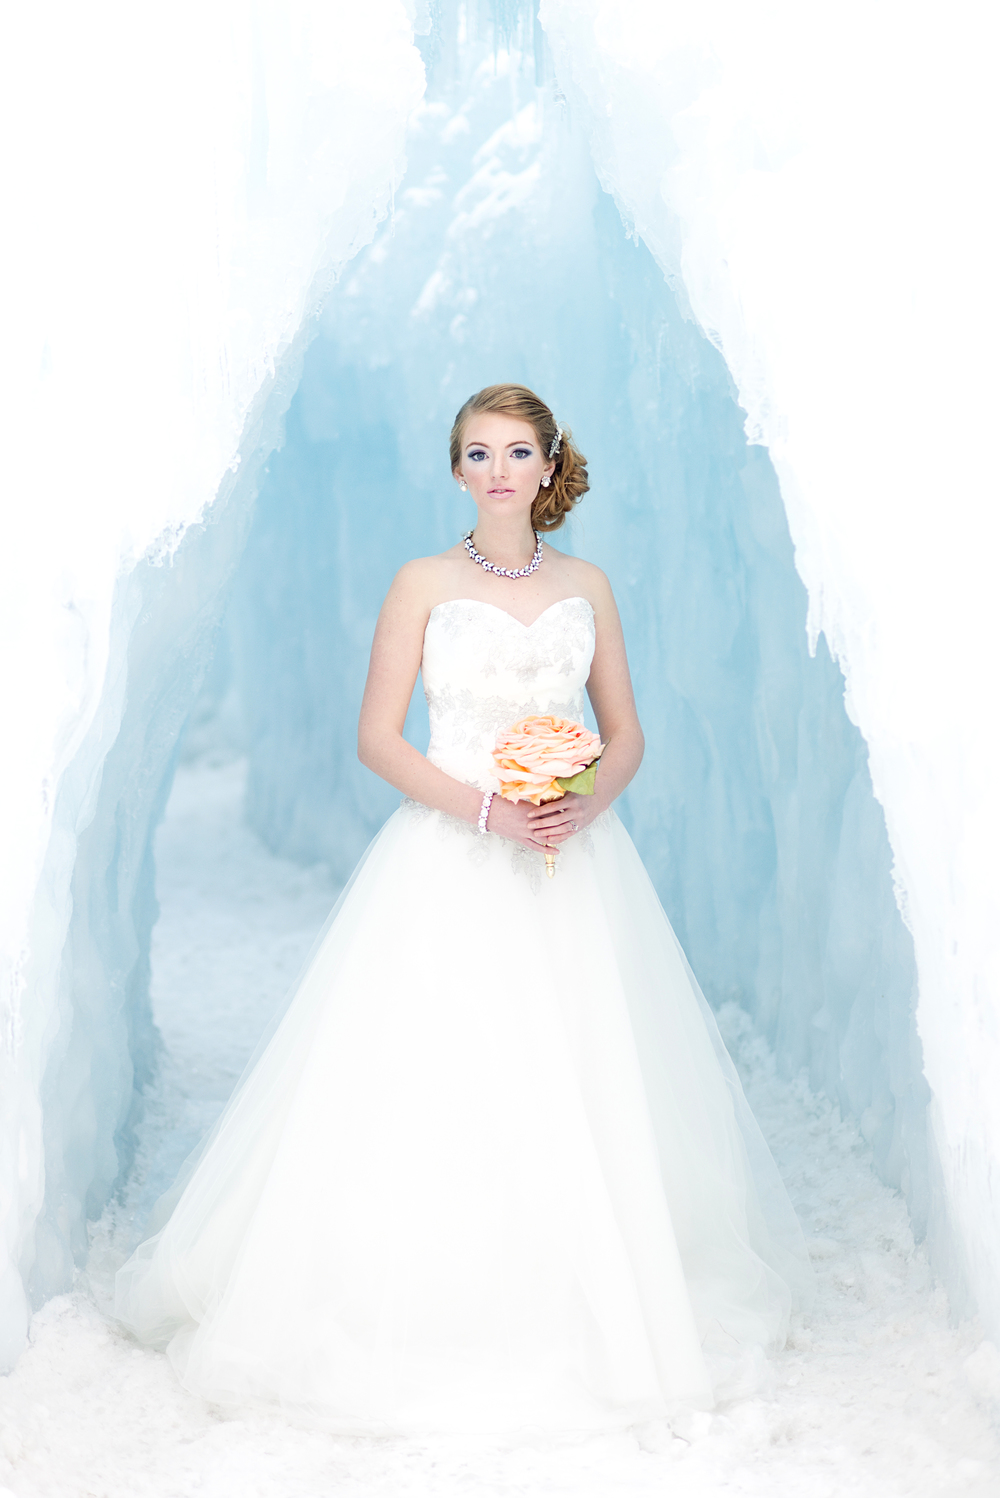 Ice Castle Composite Rose